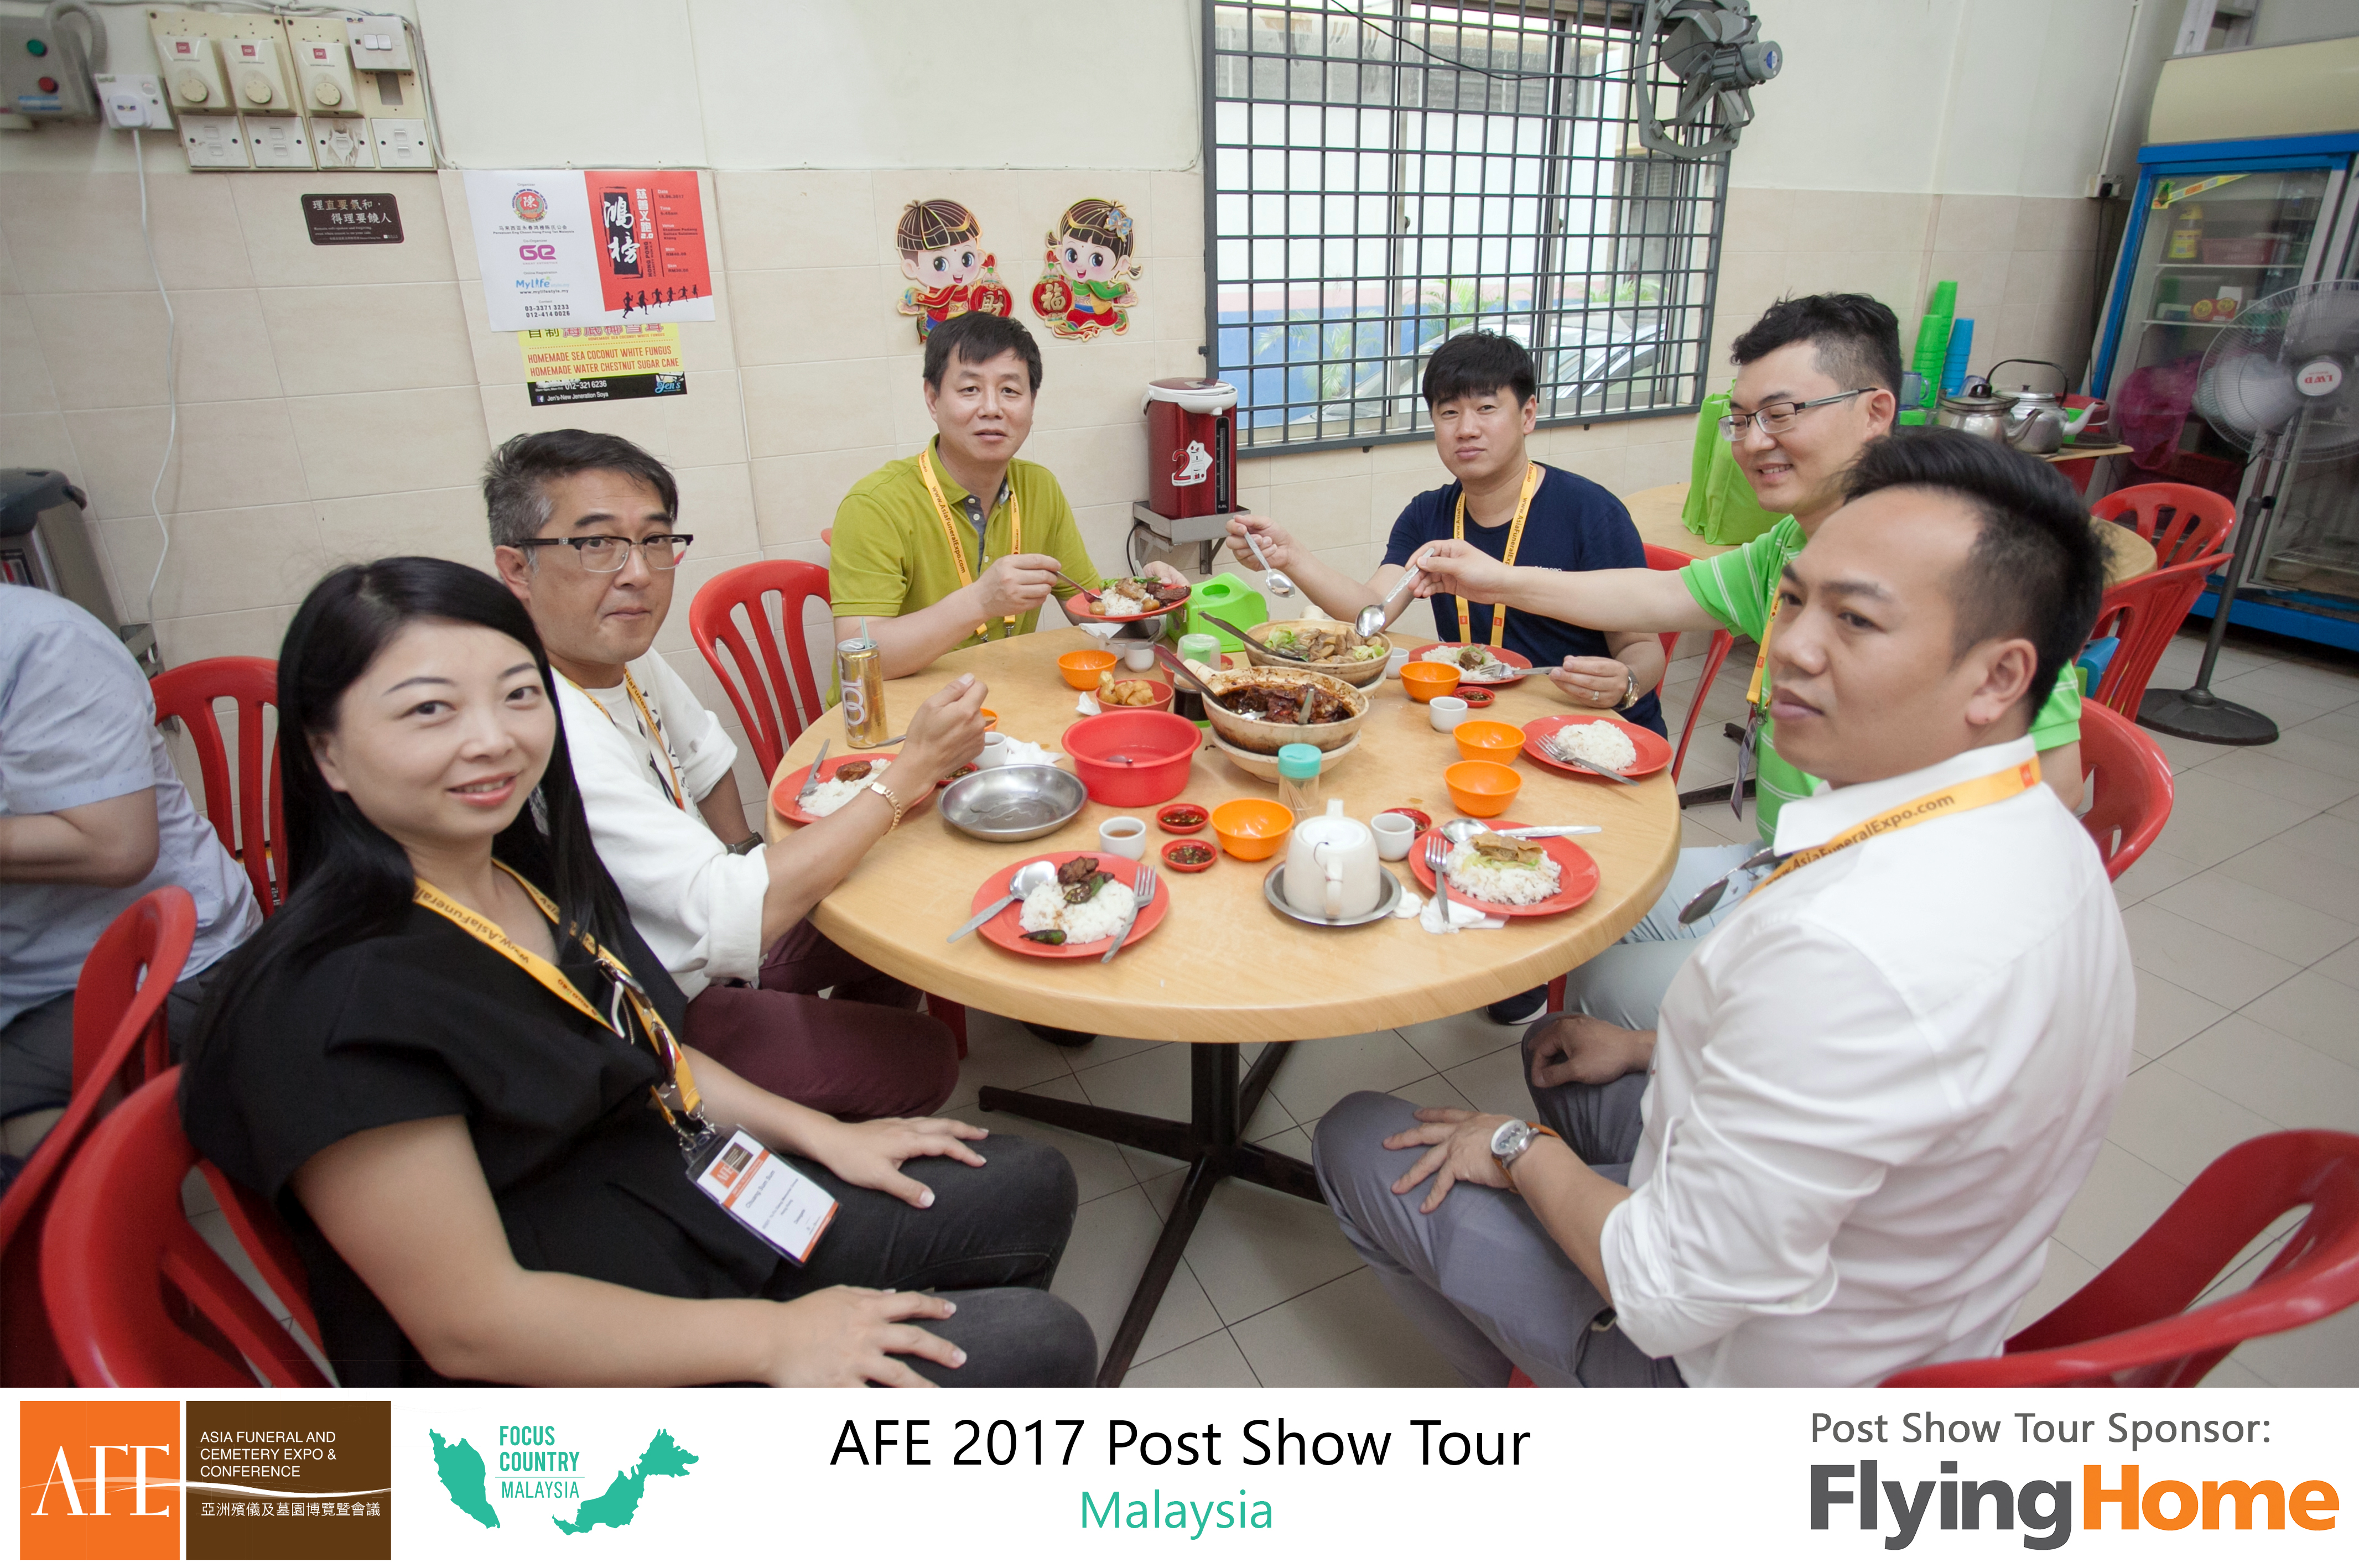 AFE Post Show Tour 2017 Day 4 - 27